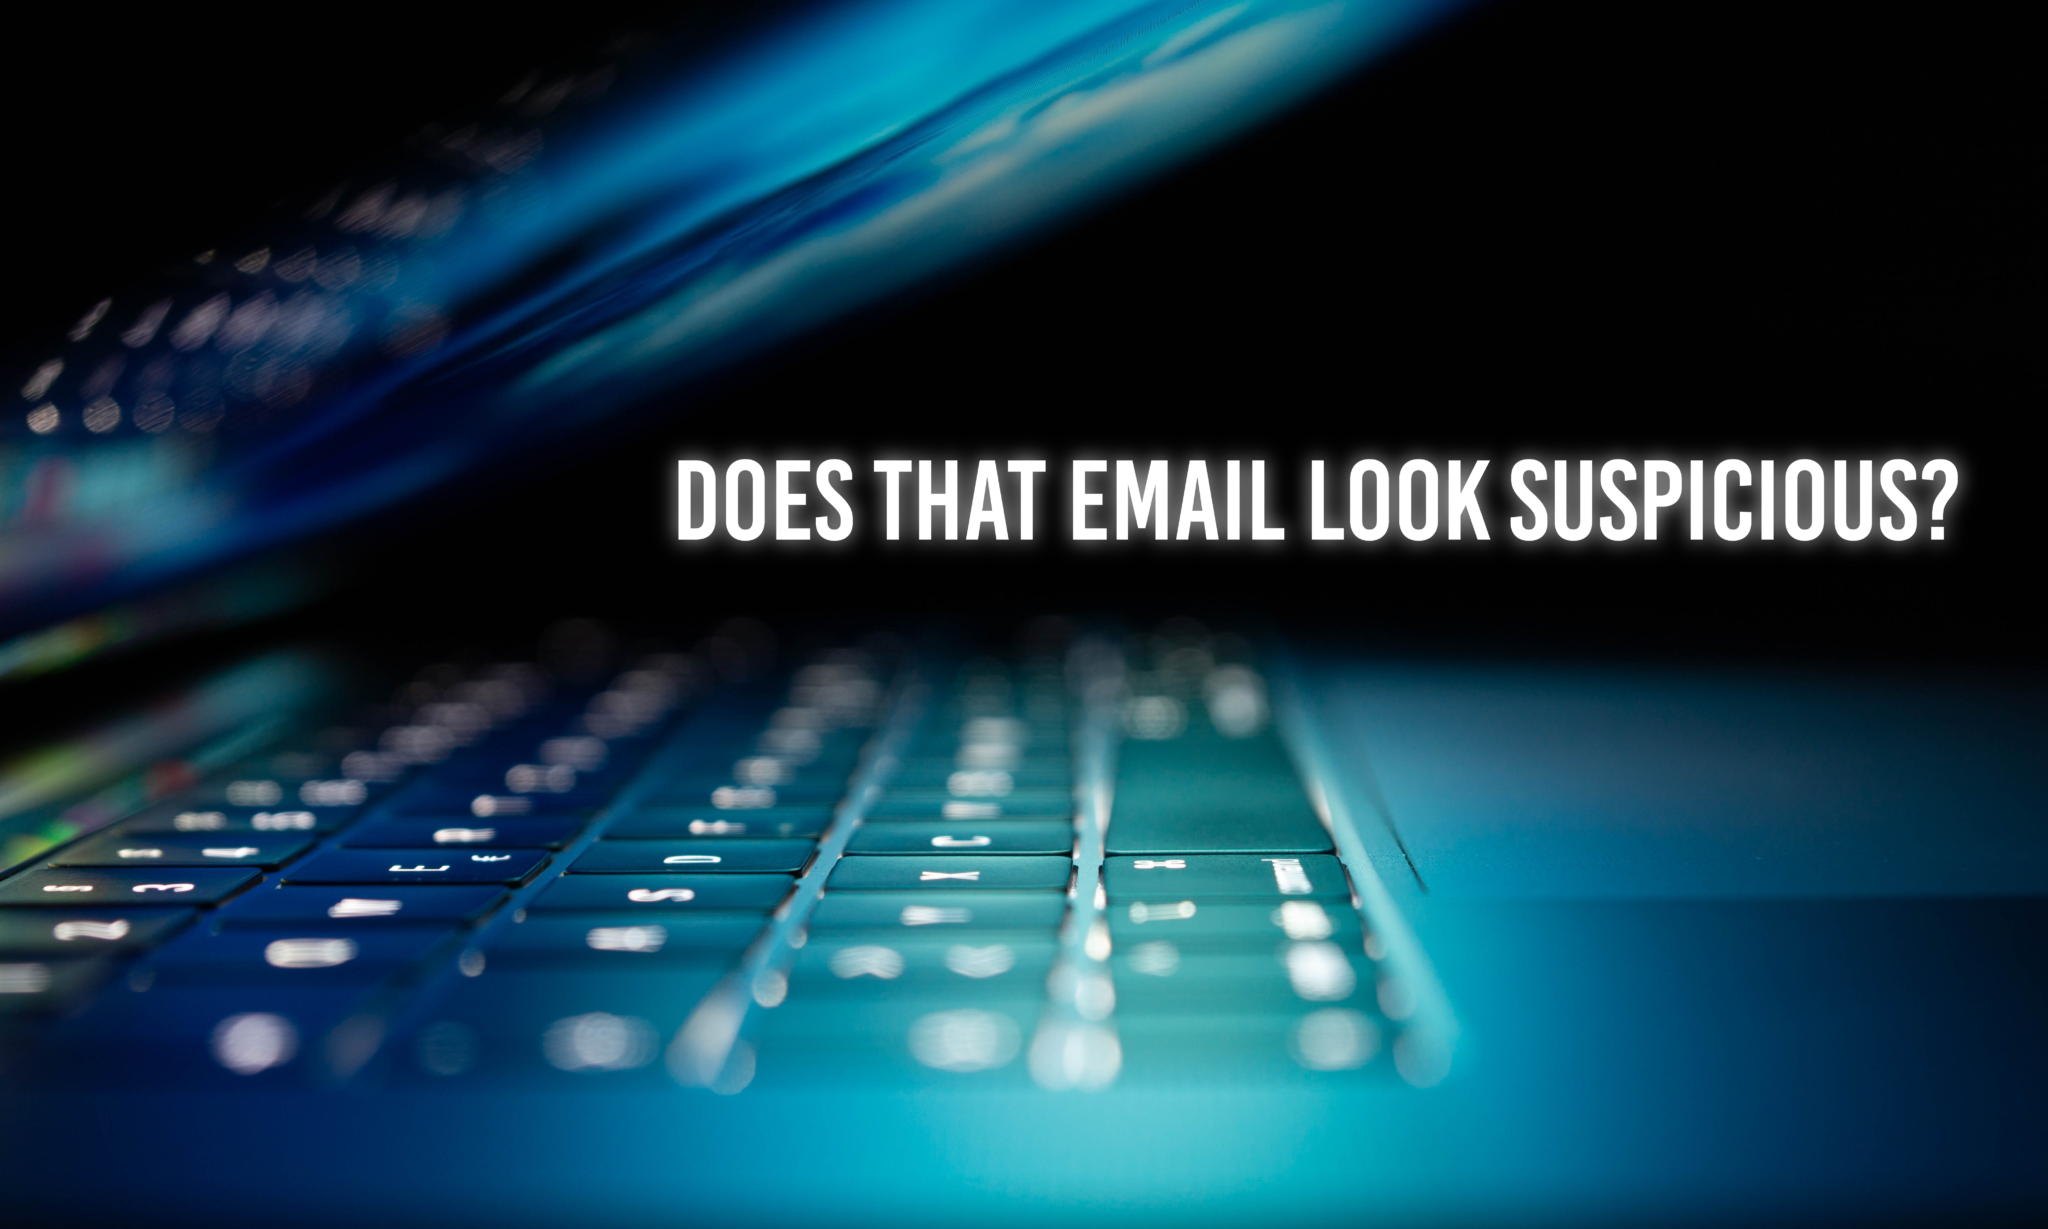 Does the email look suspicious?